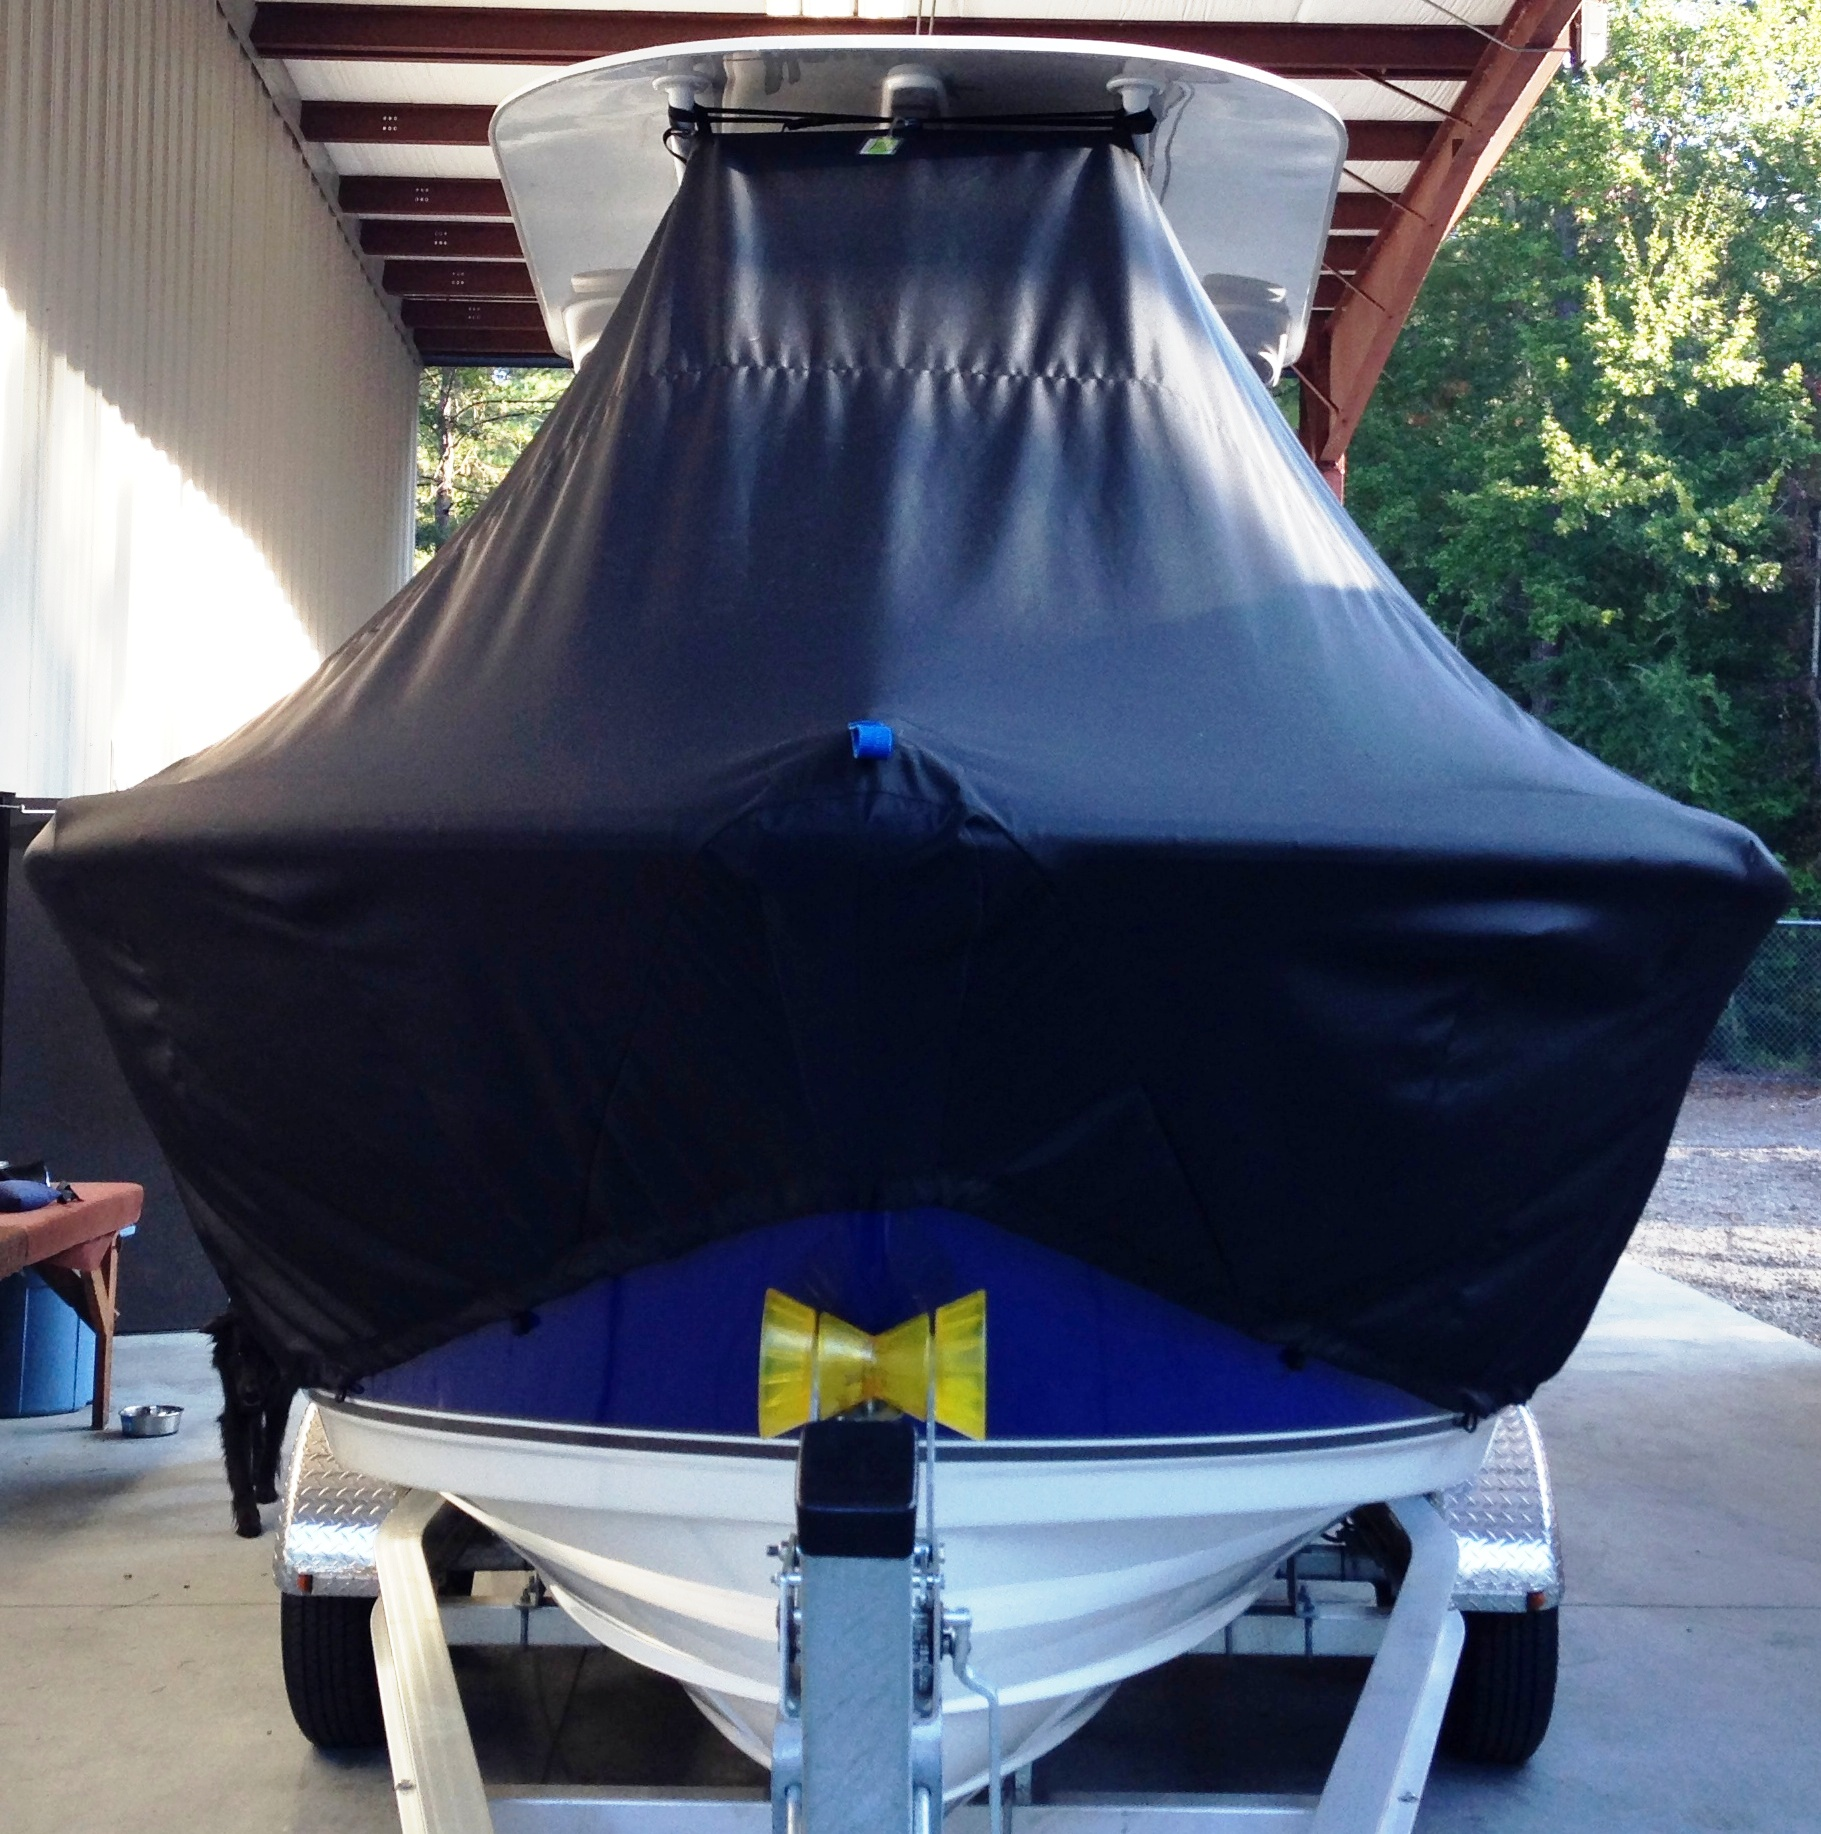 NauticStar 22XS, 20xx, TTopCovers™ T-Top boat cover front